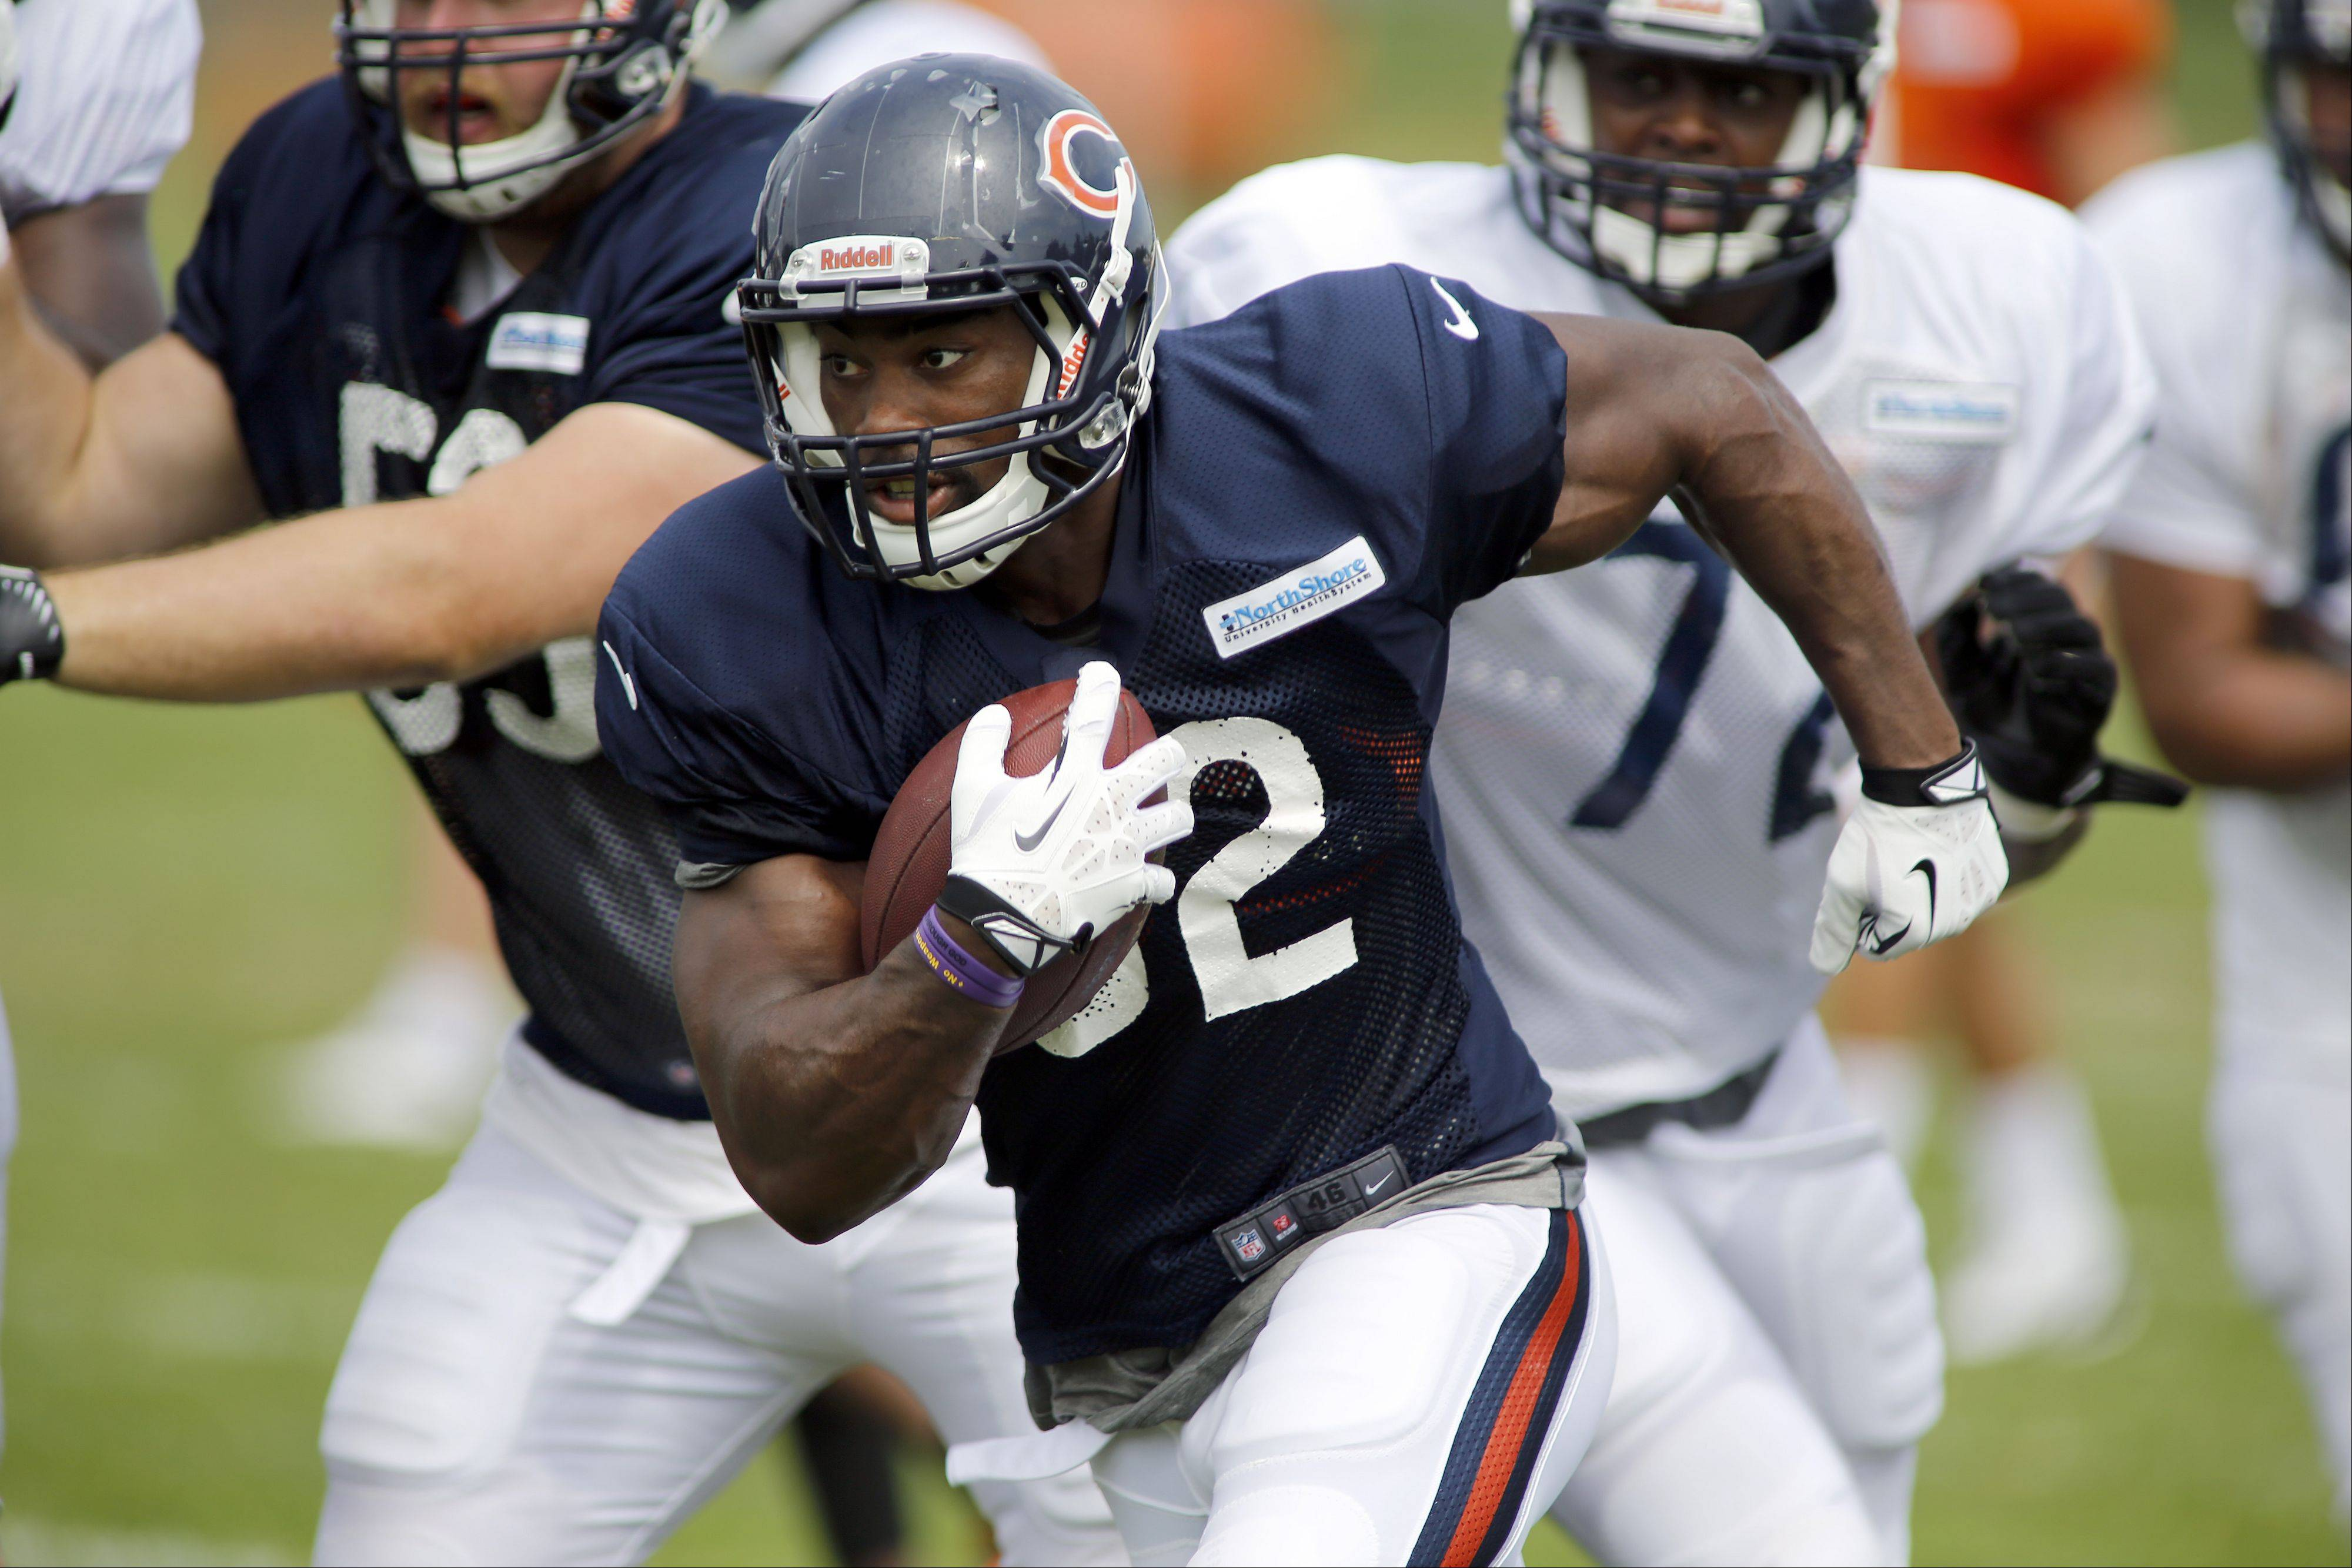 Undrafted rookie running back Michael Ford's impressive preseason performance is making it difficult for the Bears to ignore his bid for a roster spot.